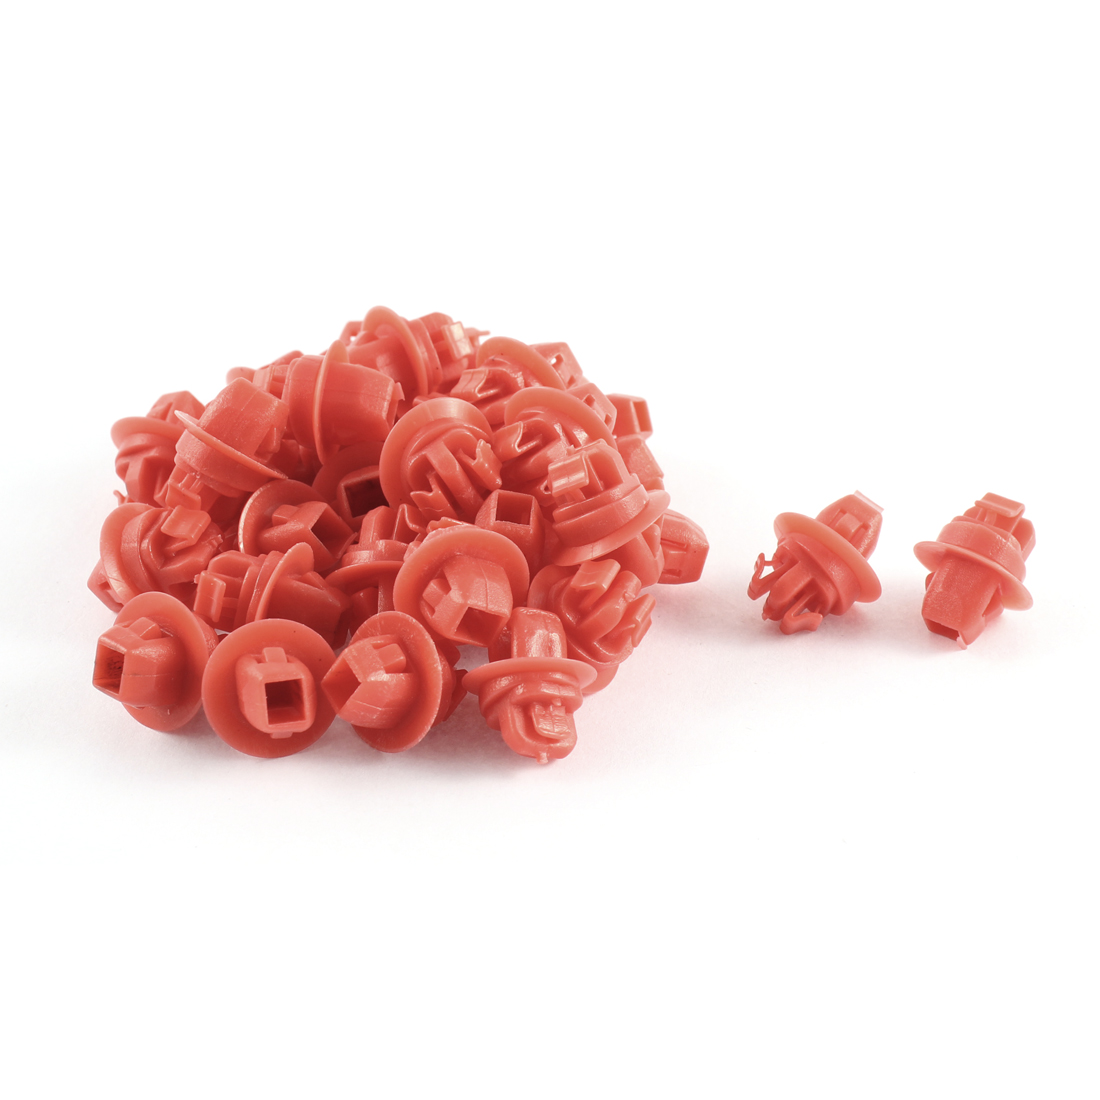 32 Pcs Red Push-Type Moulding Retainer Clips 10 x 16 x 9mm for Toyota